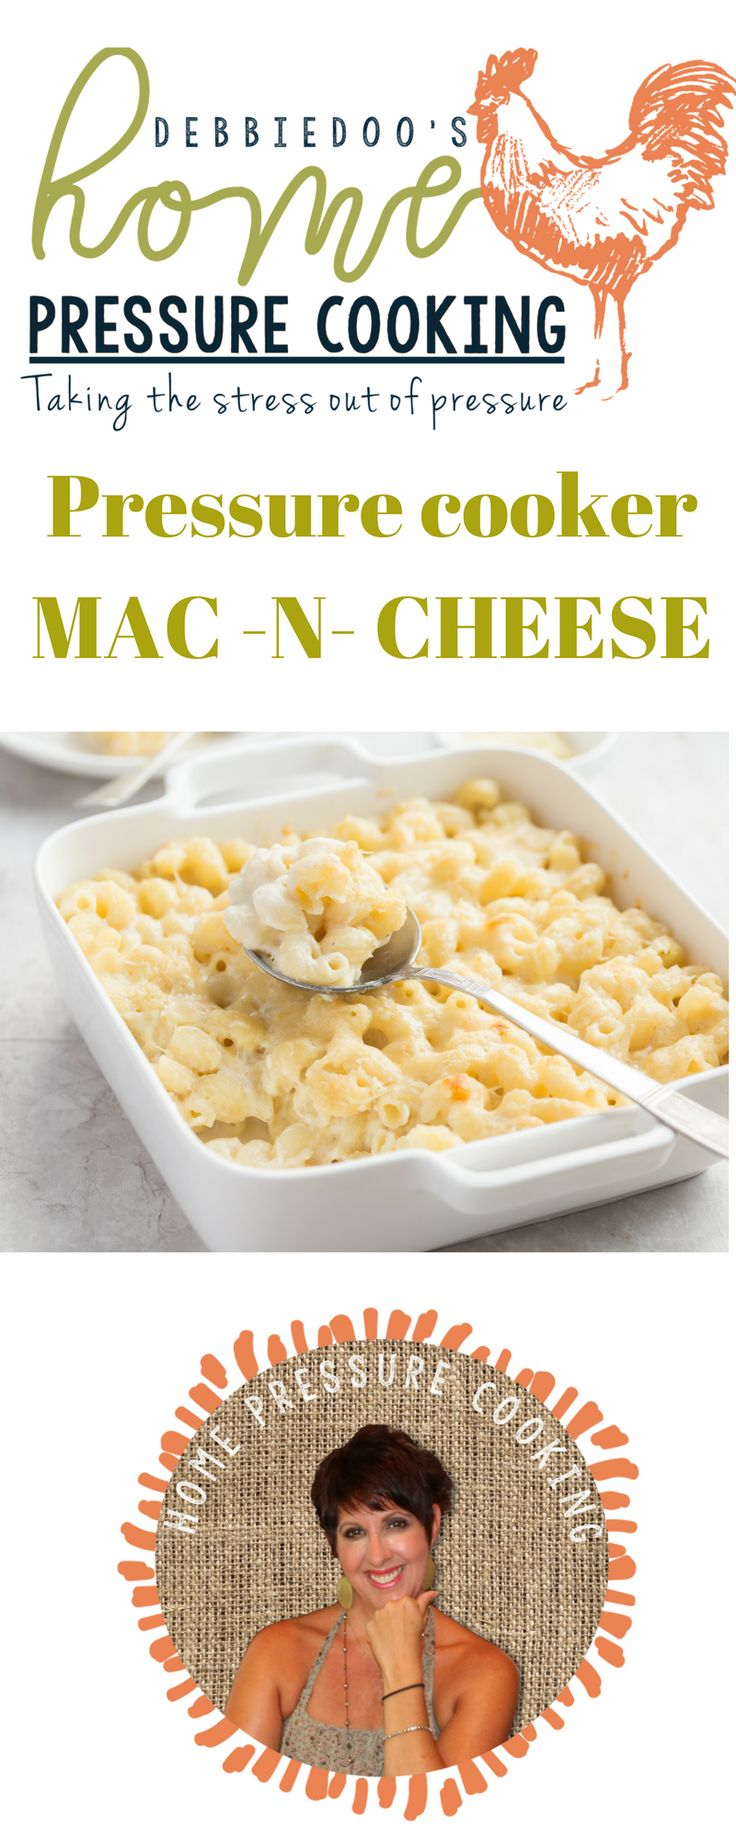 How to make macaroni and cheese in a pressure cooker – Home Pressure Cooking